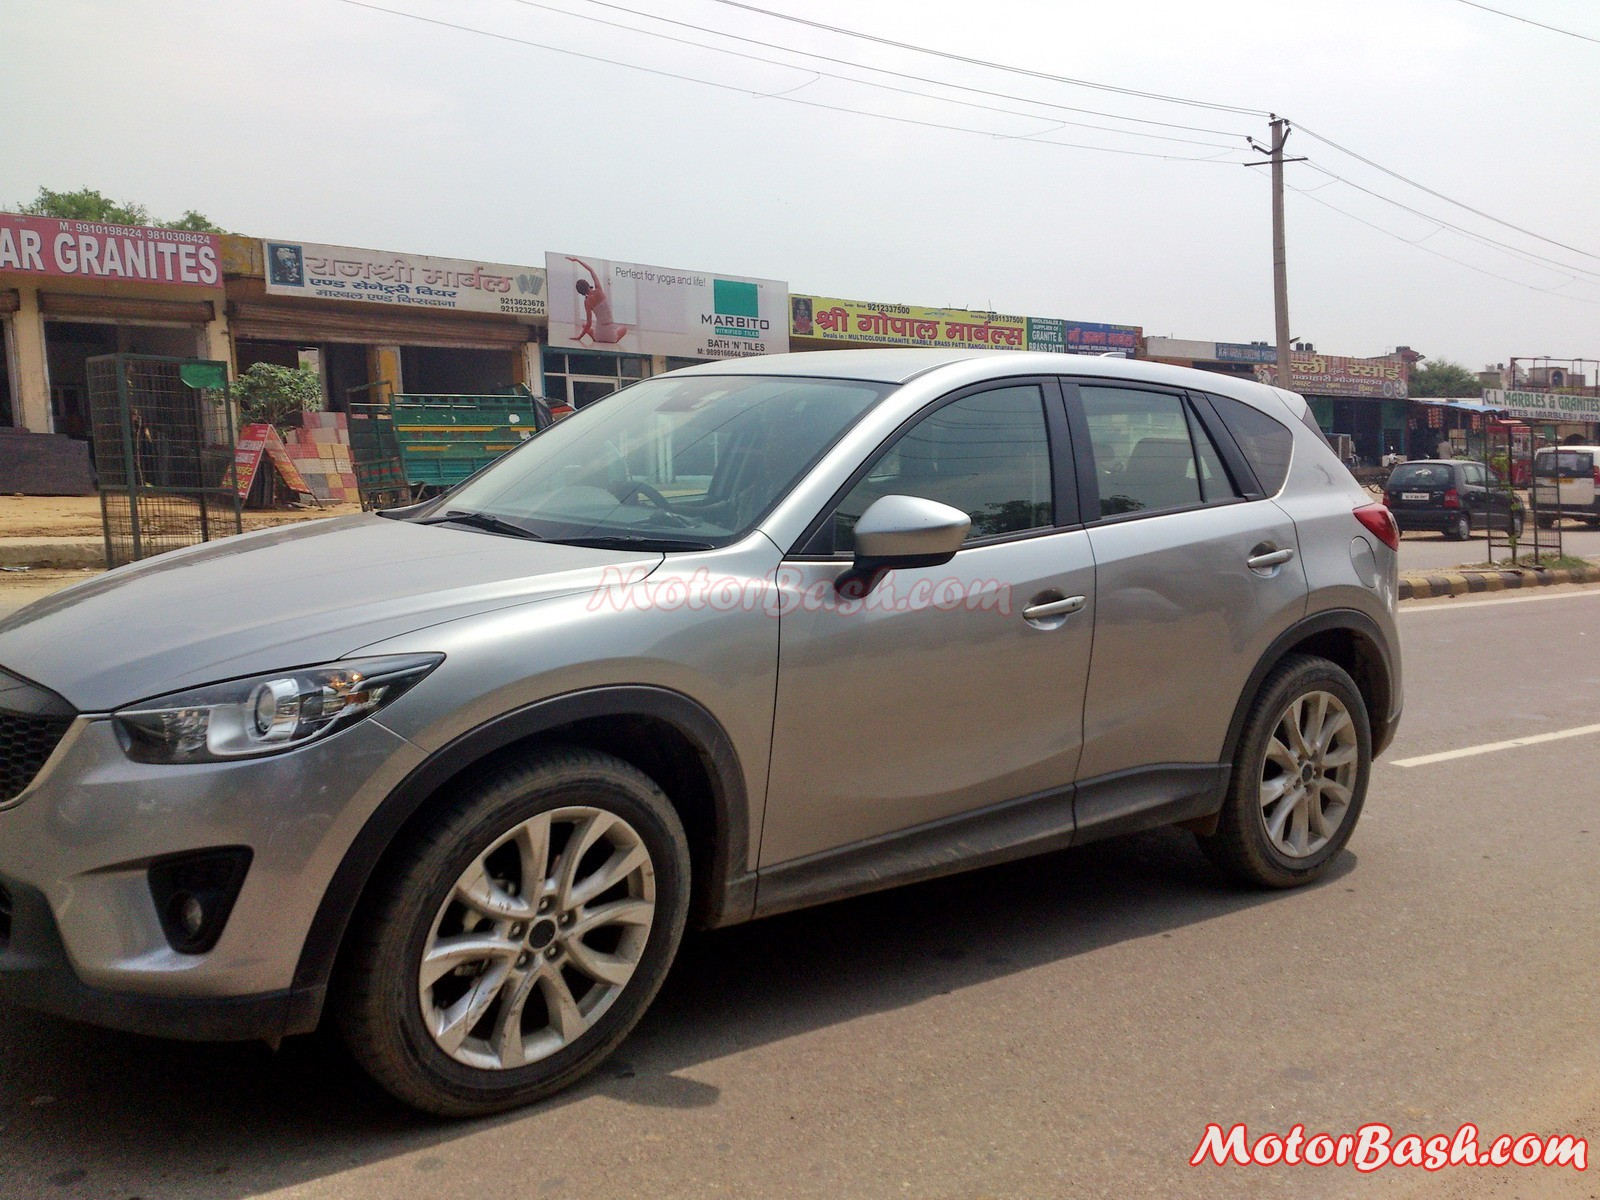 Mazda_CX-5_Testing_Gurgaon_By_MotorBash